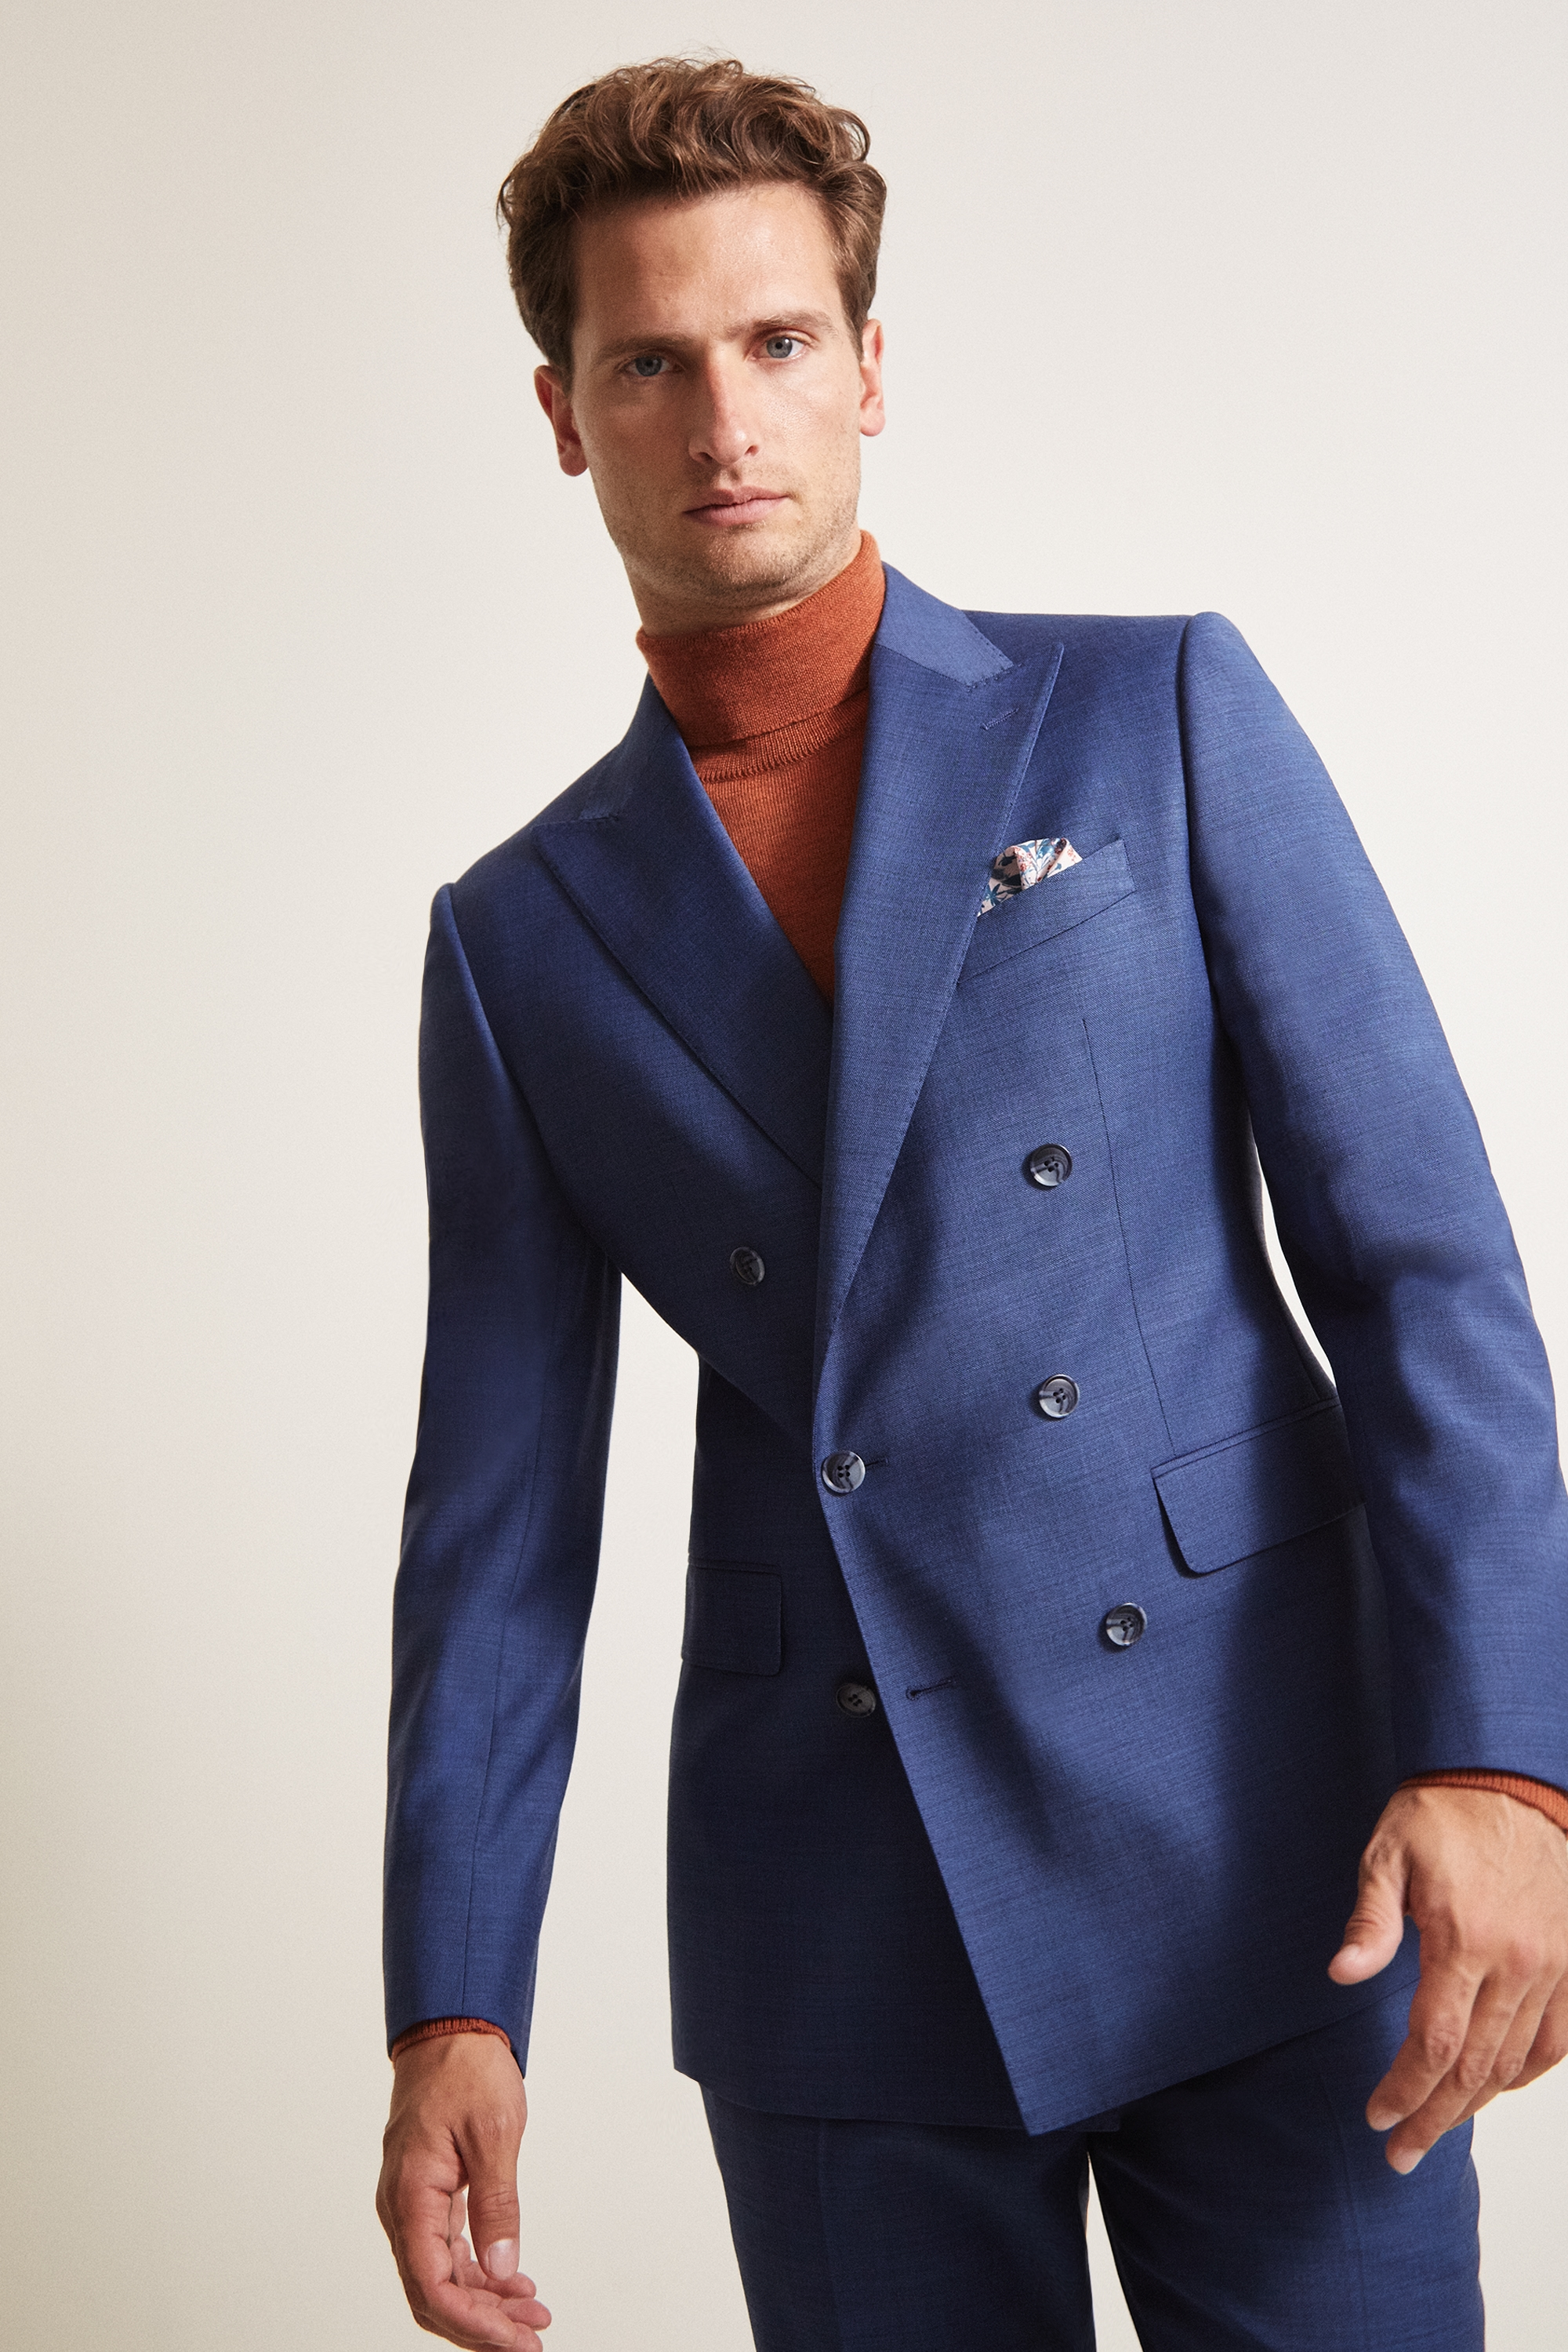 07402c3b9 Moss 1851 Tailored Fit Blue Sharkskin Double Breasted Jacket